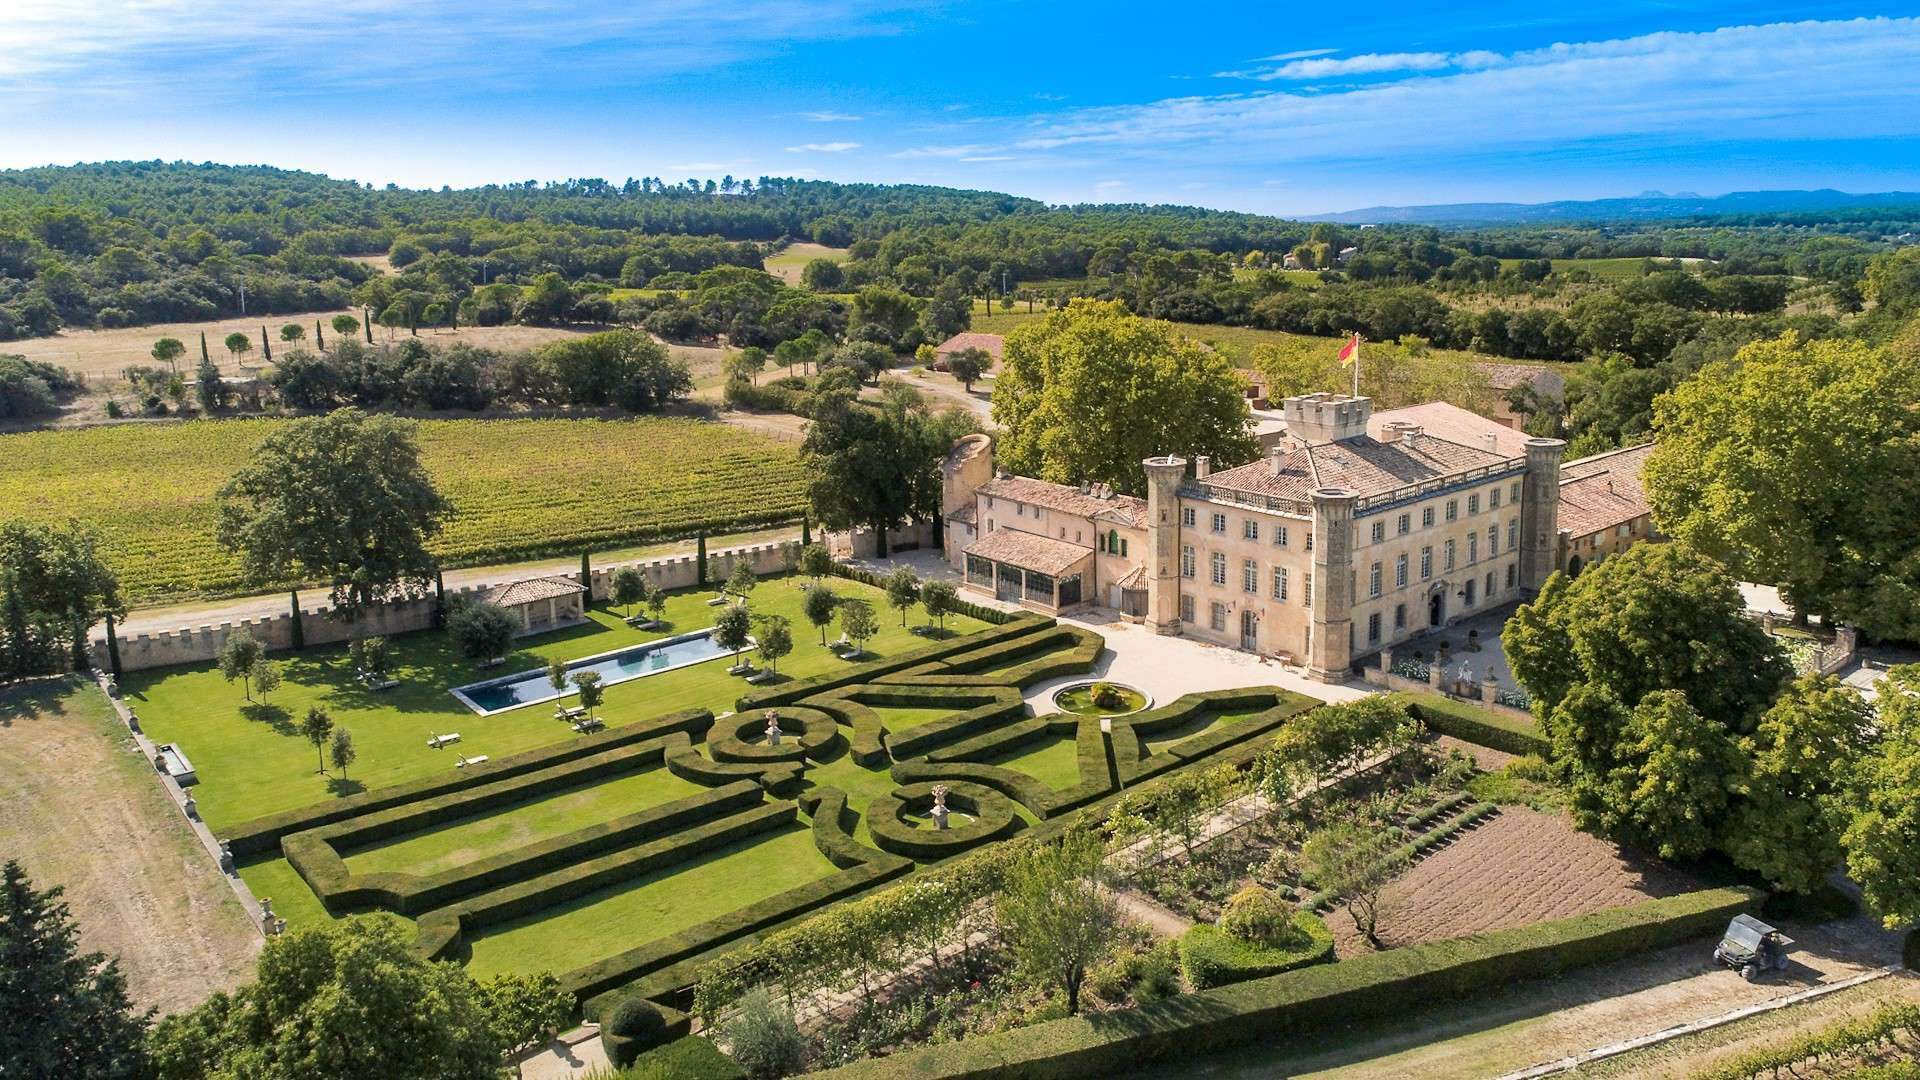 Luxury vacation rentals europe - France - Provence ih - Aix en provence  - Chateau de Candolle - Image 1/23